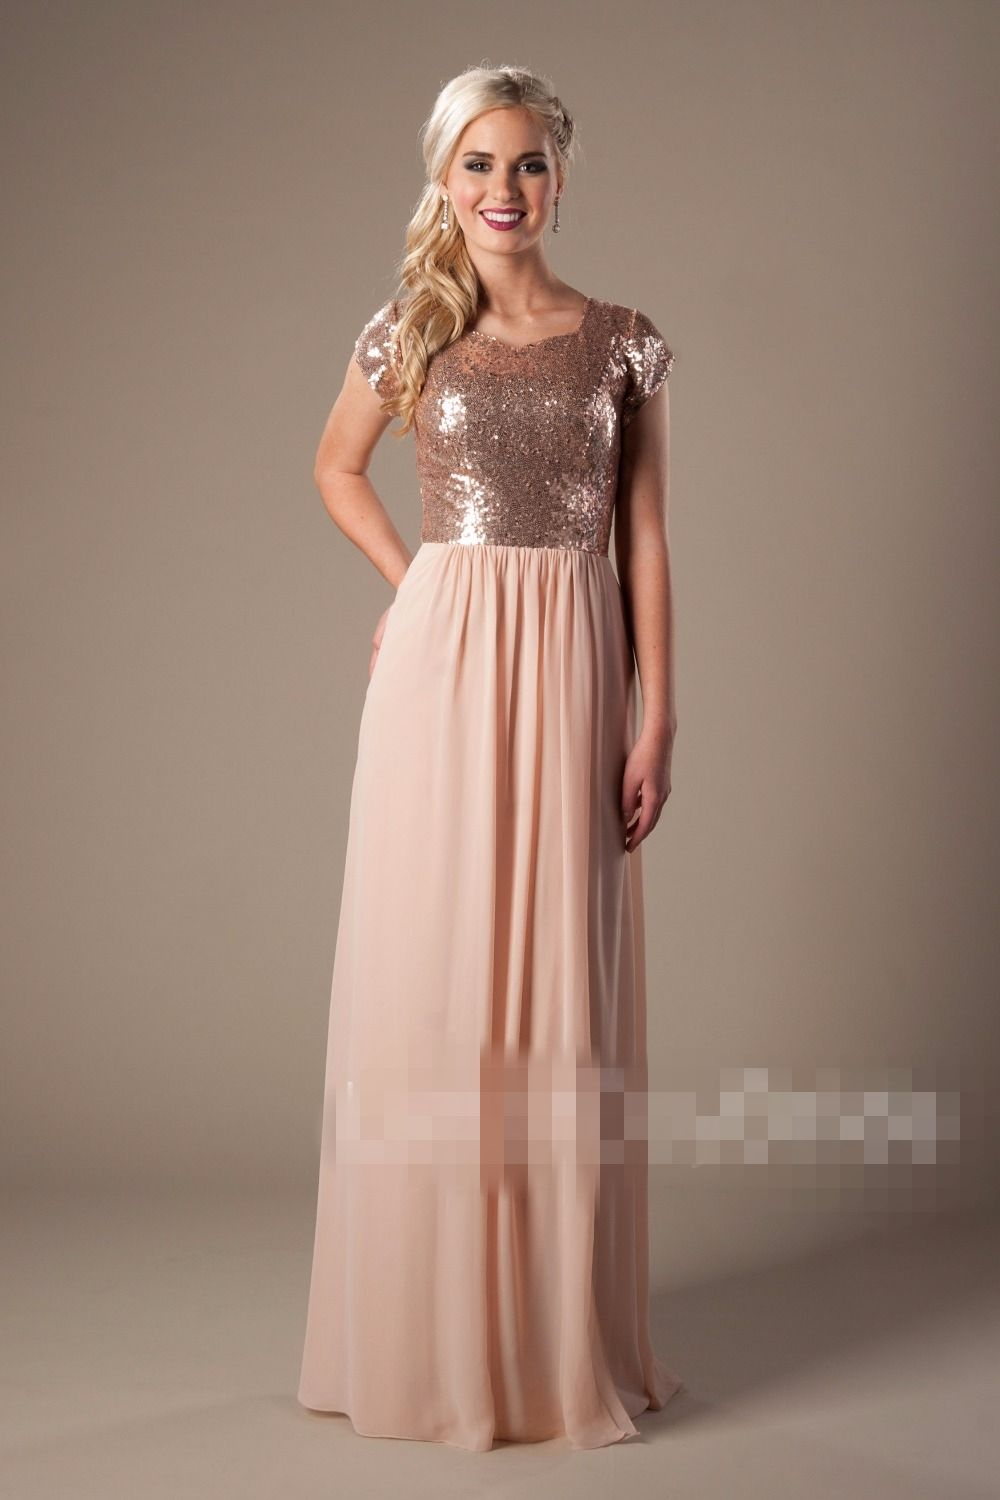 Rose Gold Chiffon Sequins Long Modest Bridesmaid Dresses 2017 Cap Sleeves Floor  Length Country Women Formal Wedding Party Dress-in Bridesmaid Dresses from  ... 62abbd5f3ba9